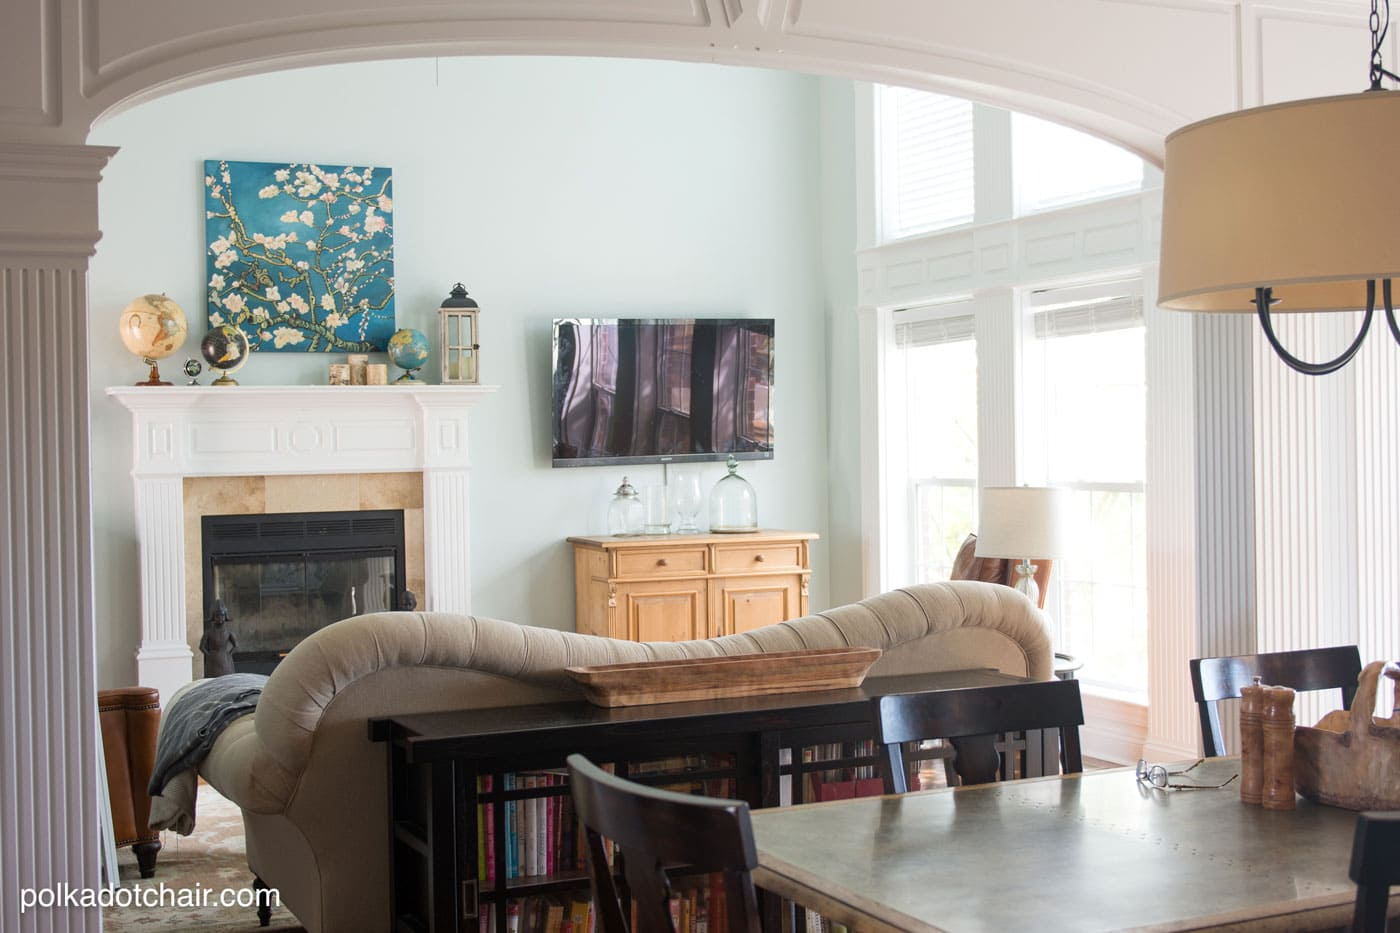 Great ways to update your Living Room with lots of decor Ideas, the paint color on the walls is Serene Journey by BEHR